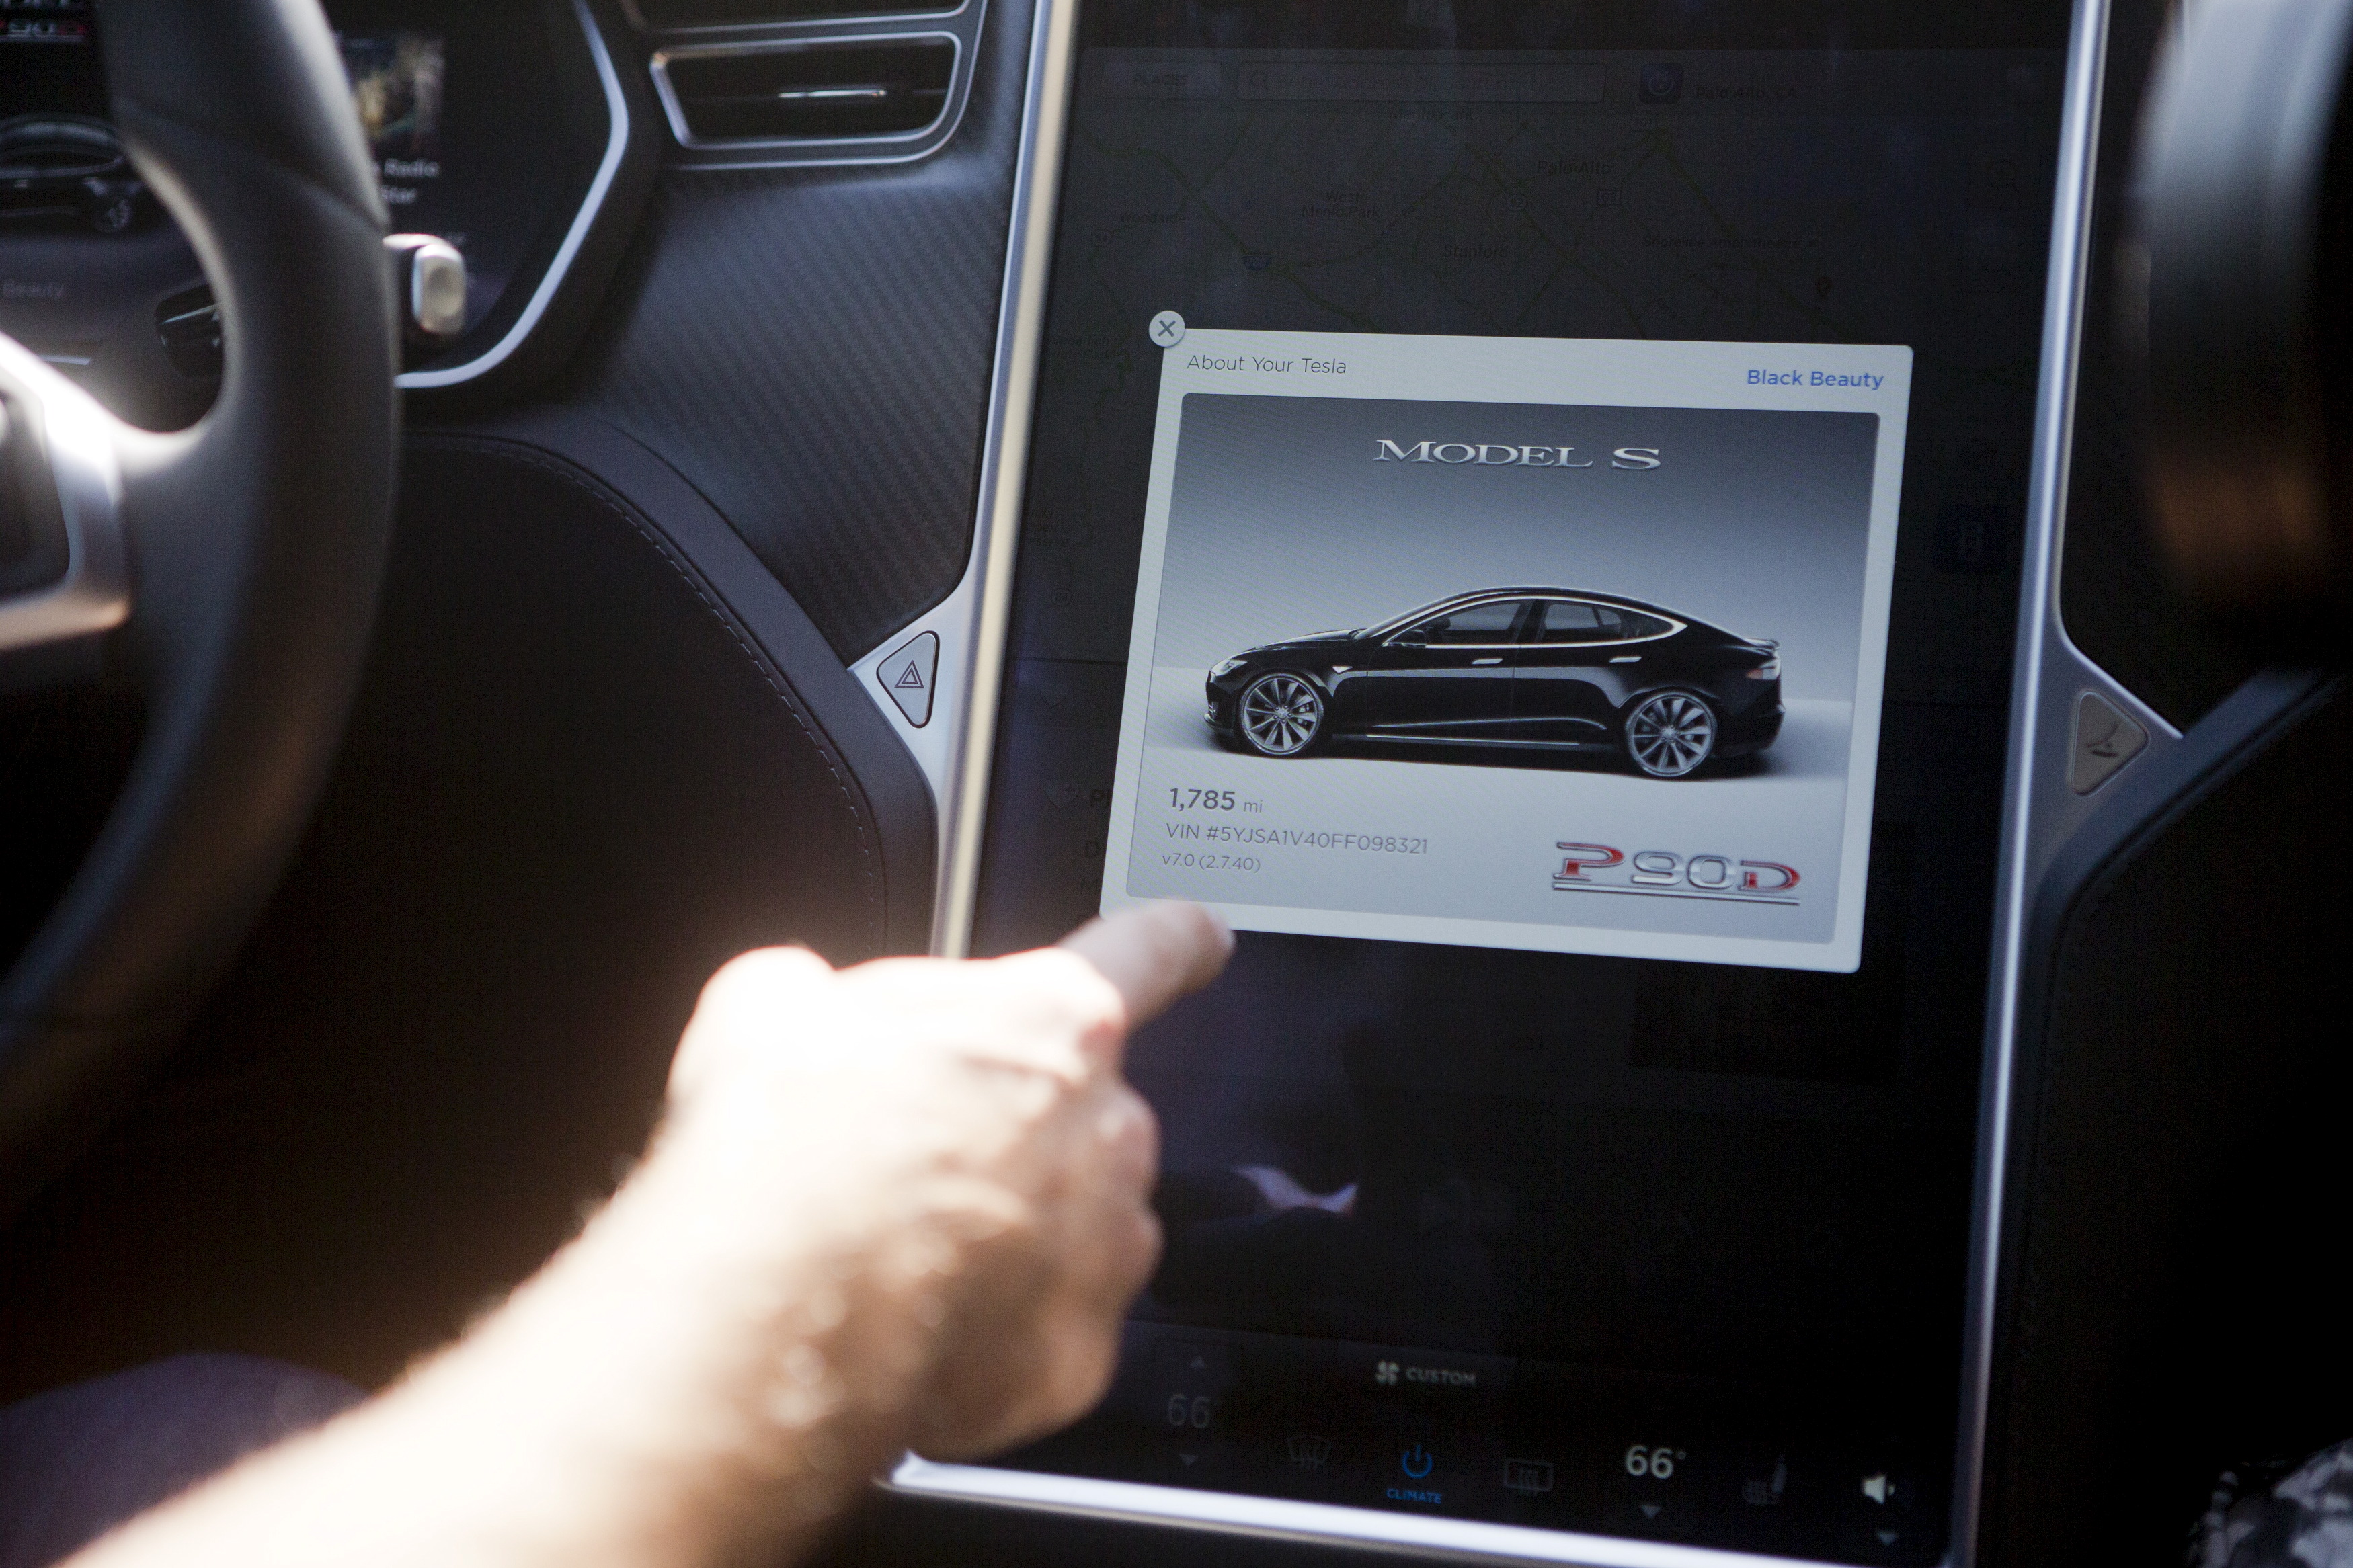 Tesla Motors (TSLA) Autopilot 8.1 Update For HW1 To Roll Out Late January